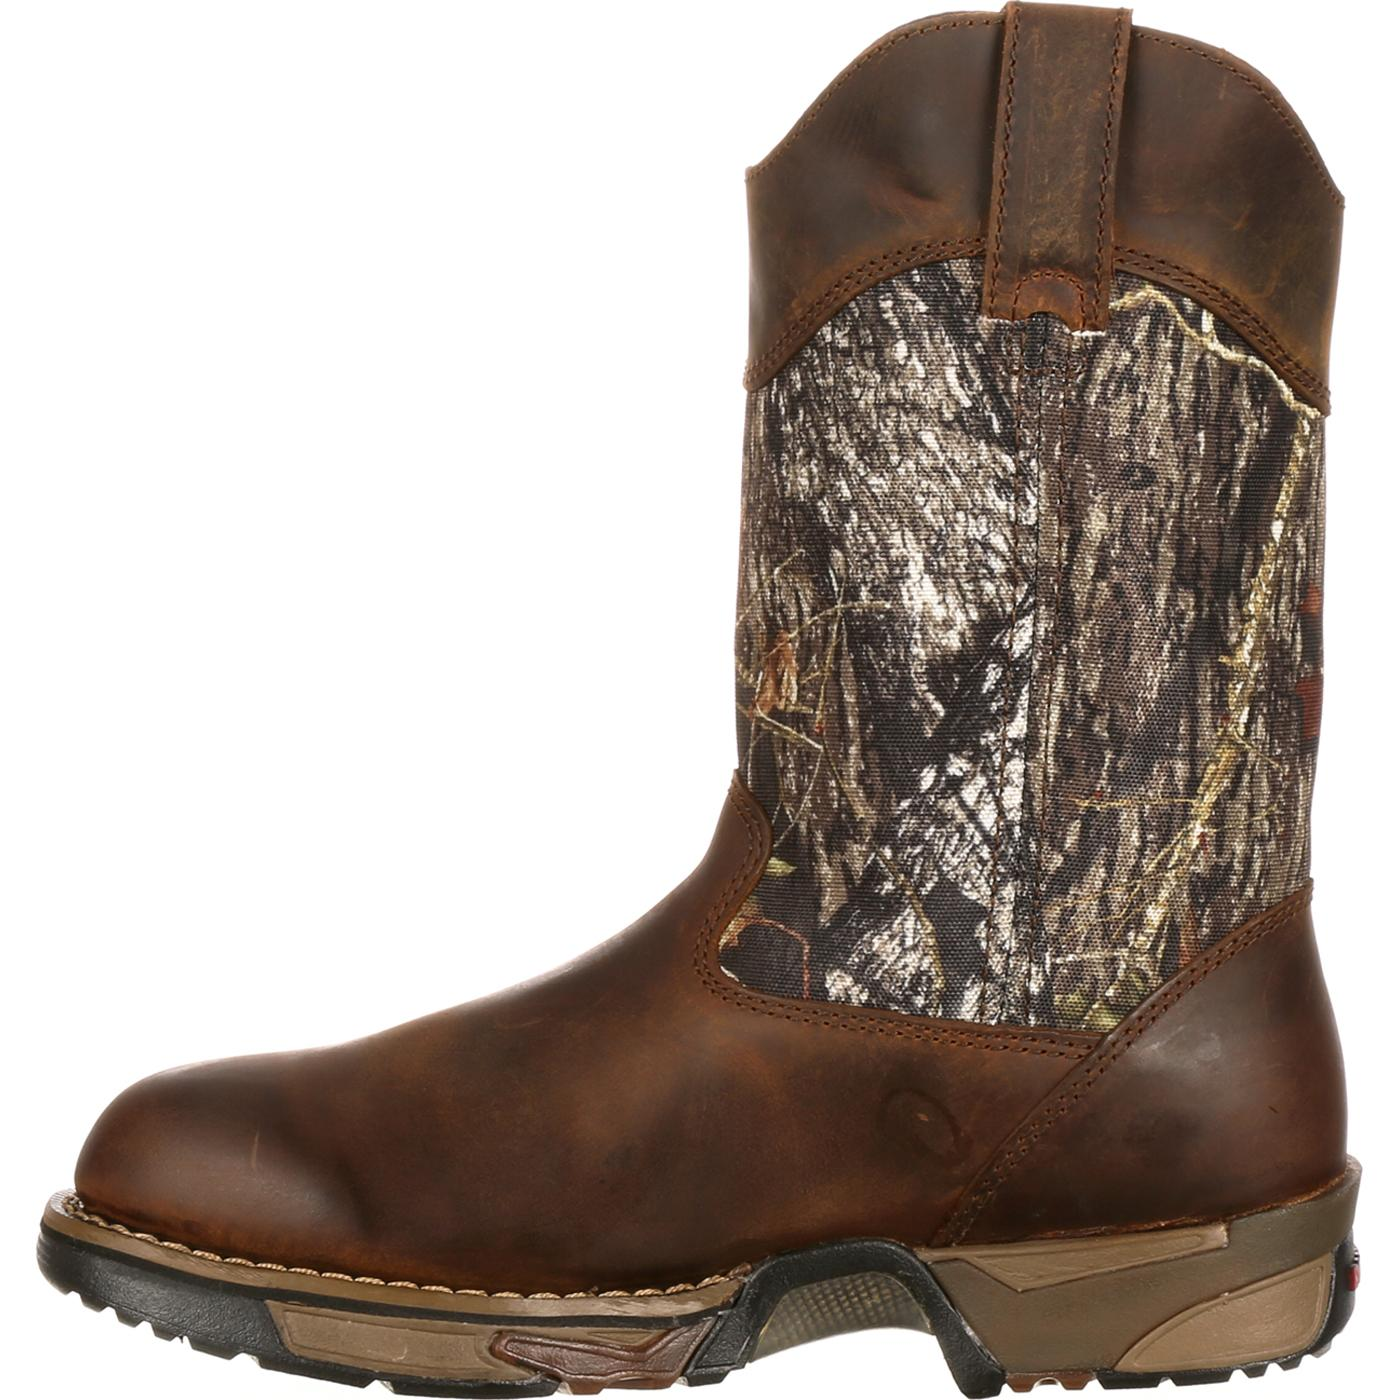 Rocky Aztec Waterproof Mobu Pull On Boots Style 2871